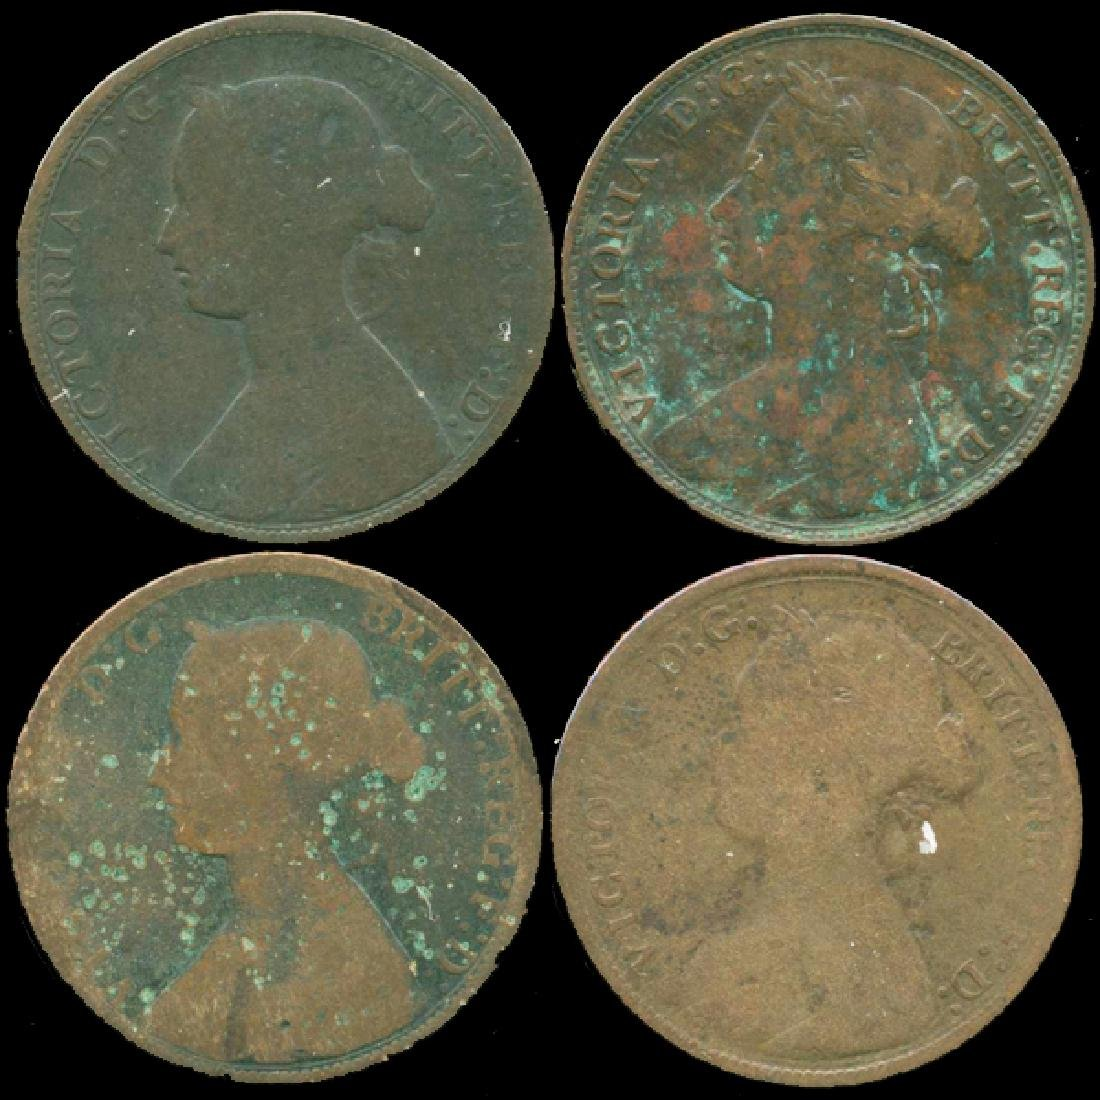 1870s G Britain 1/2 Penny 4 pcs